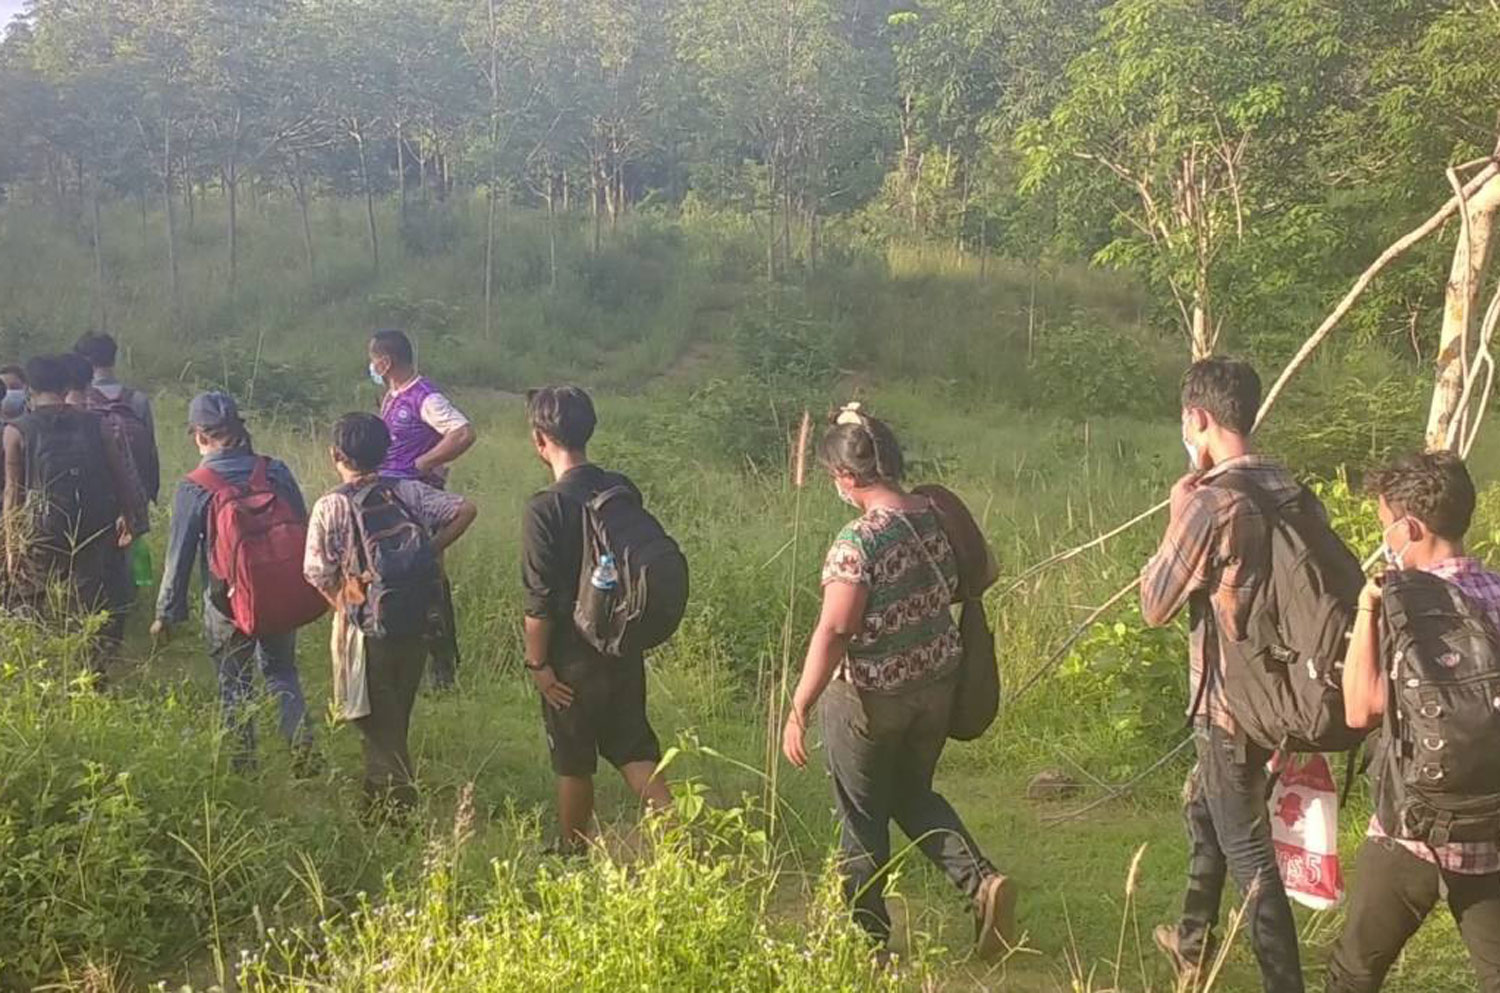 More illegal border crossers, guide caught